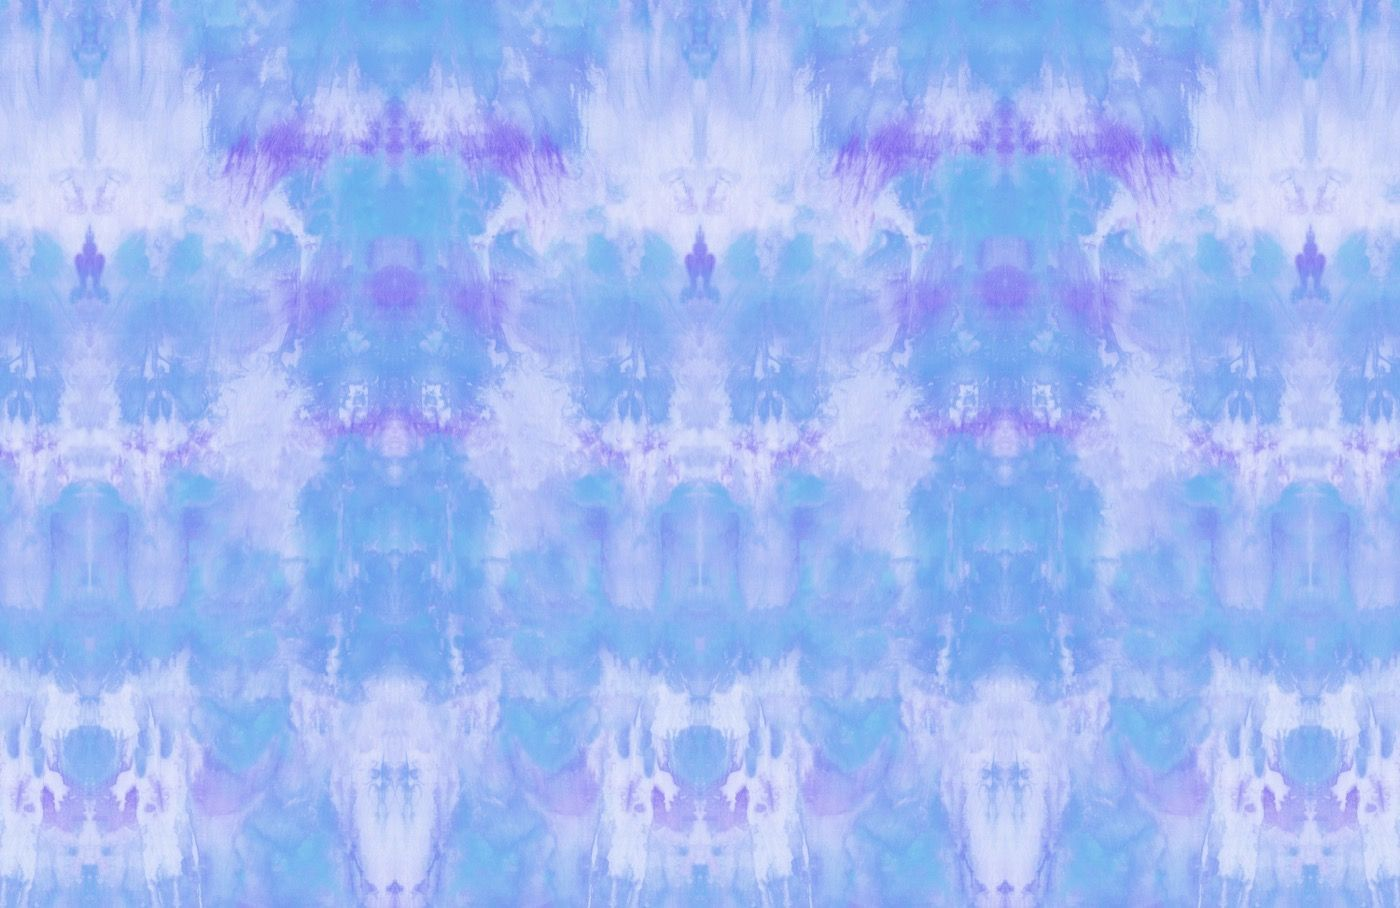 Best Photos Blue Tie Dye Wallpaper Cool Tie Dye Pattern Muralswallpaper Style Because Of This Simple R Tie Dye Wallpaper Cool Tie Dye Patterns Wallpaper